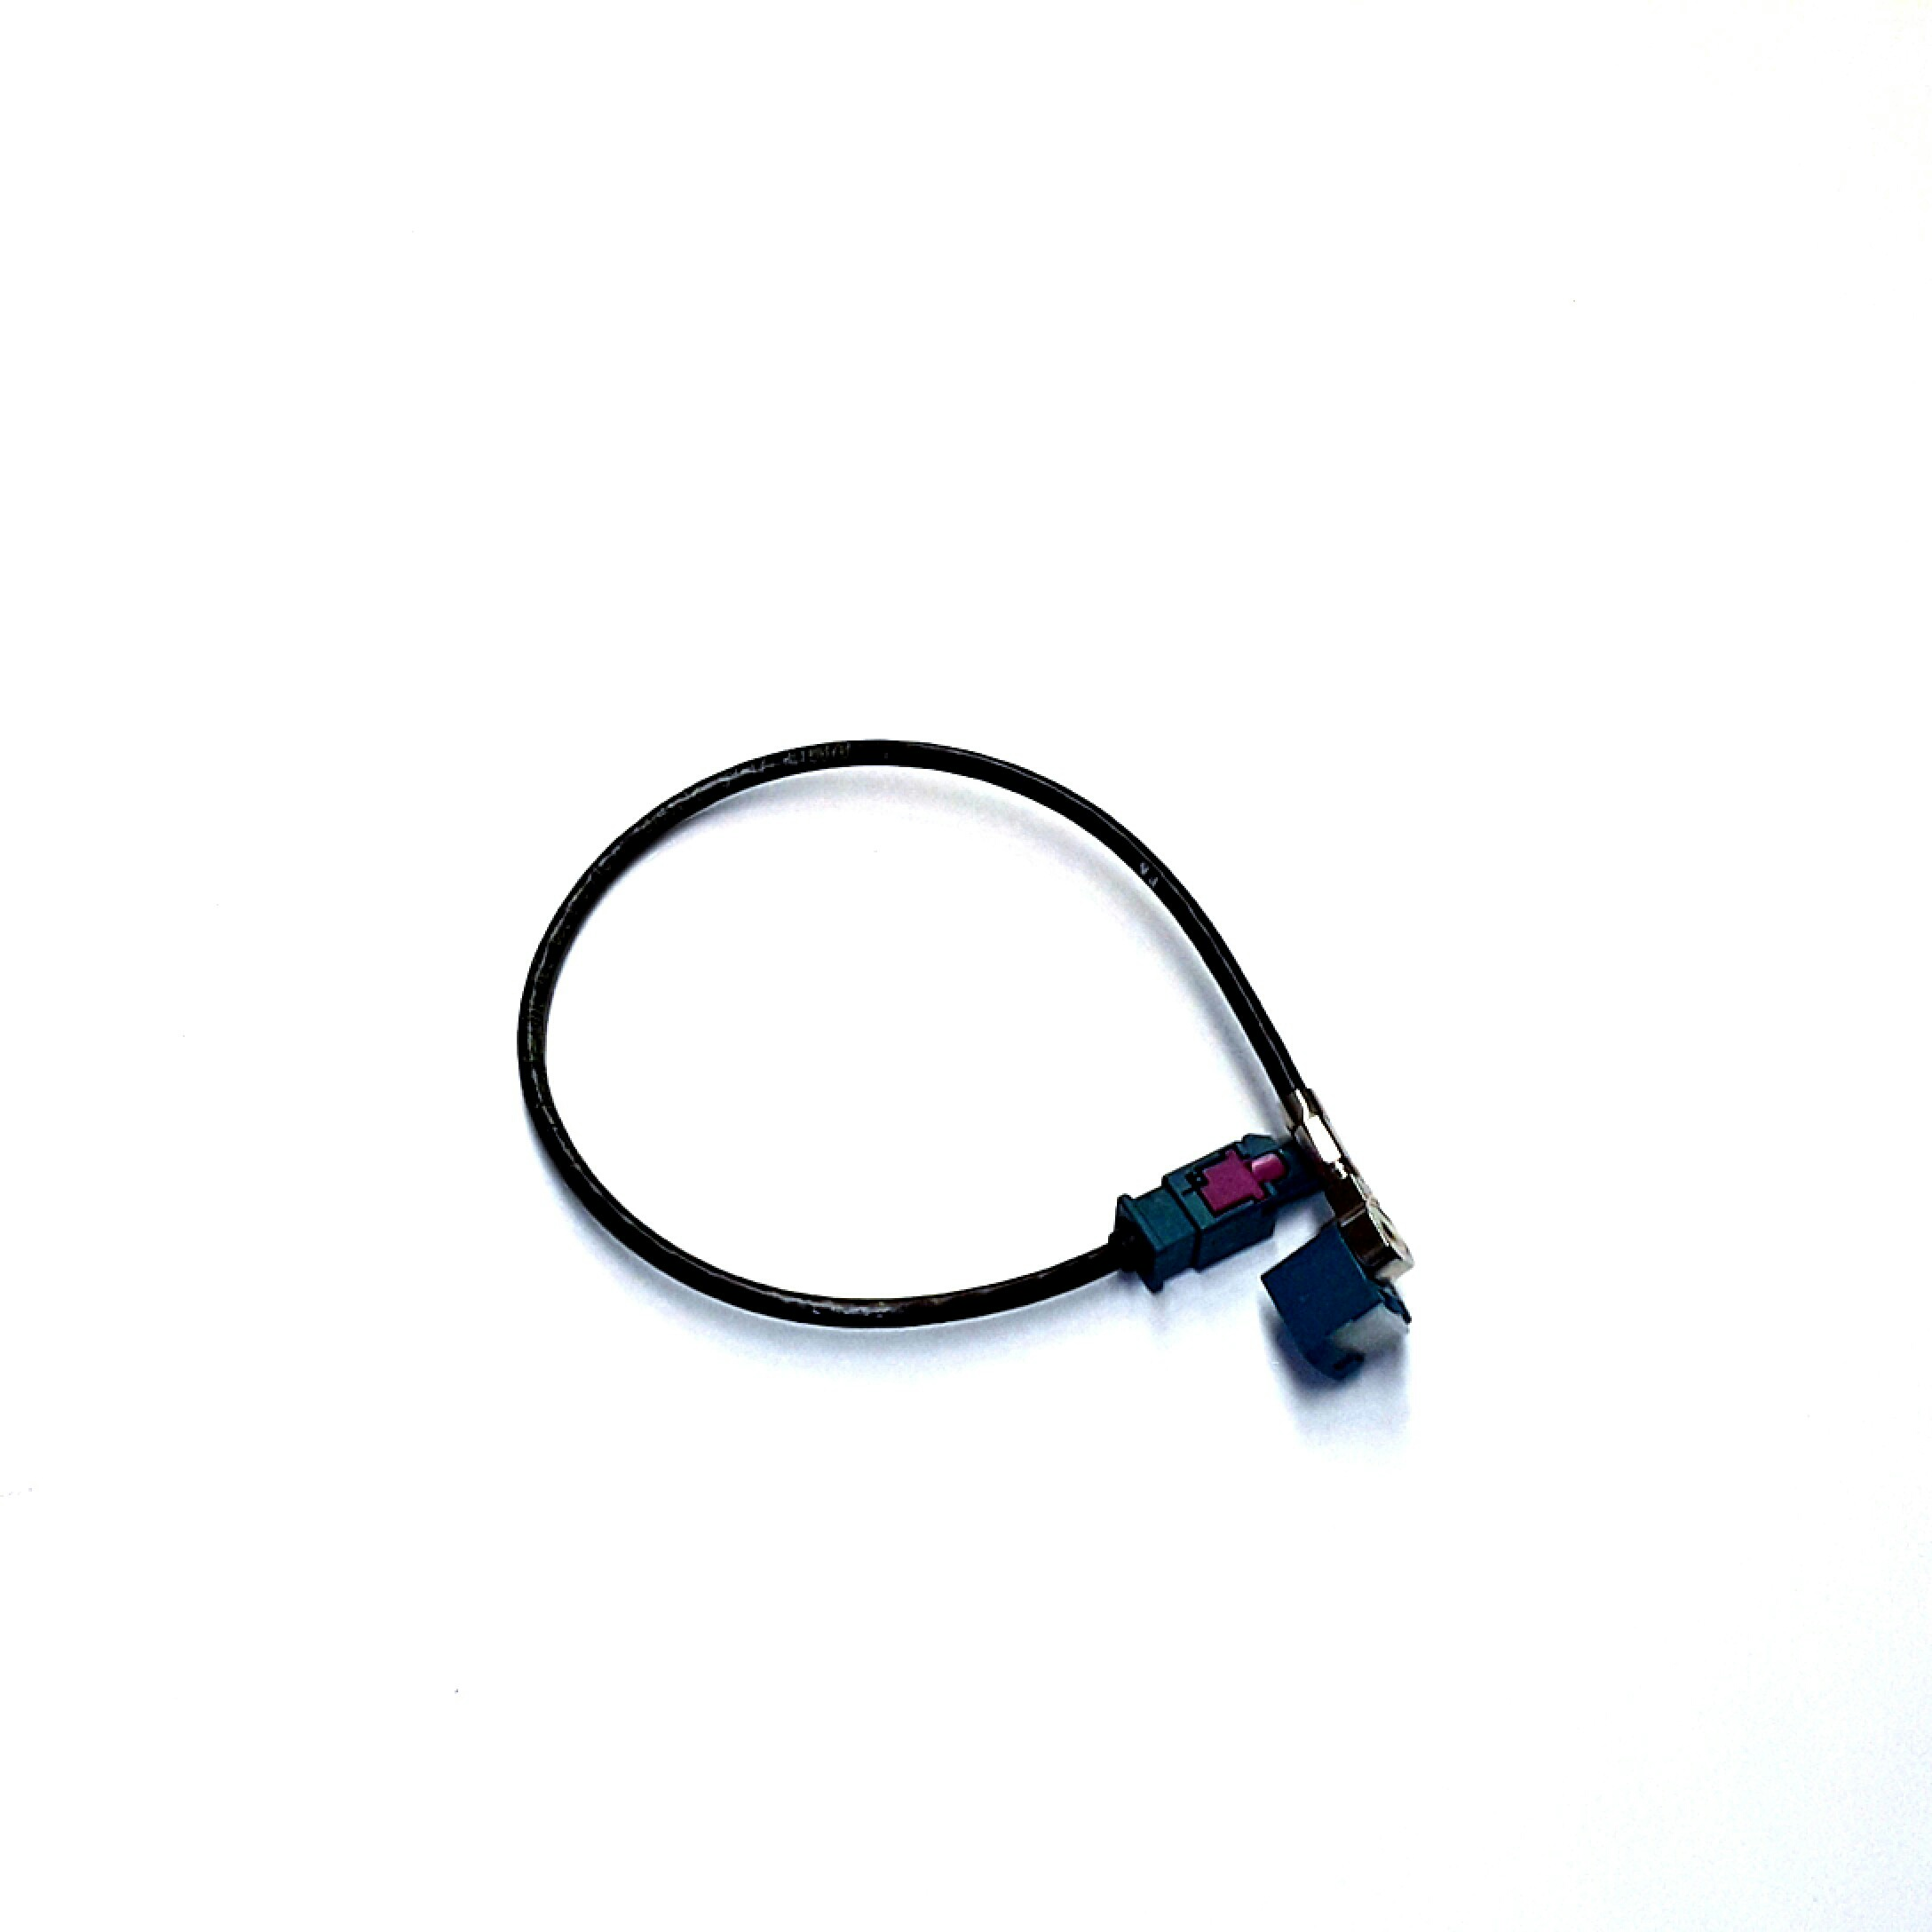 000098710a Audi Radio Adapter Antenna Cable Connector